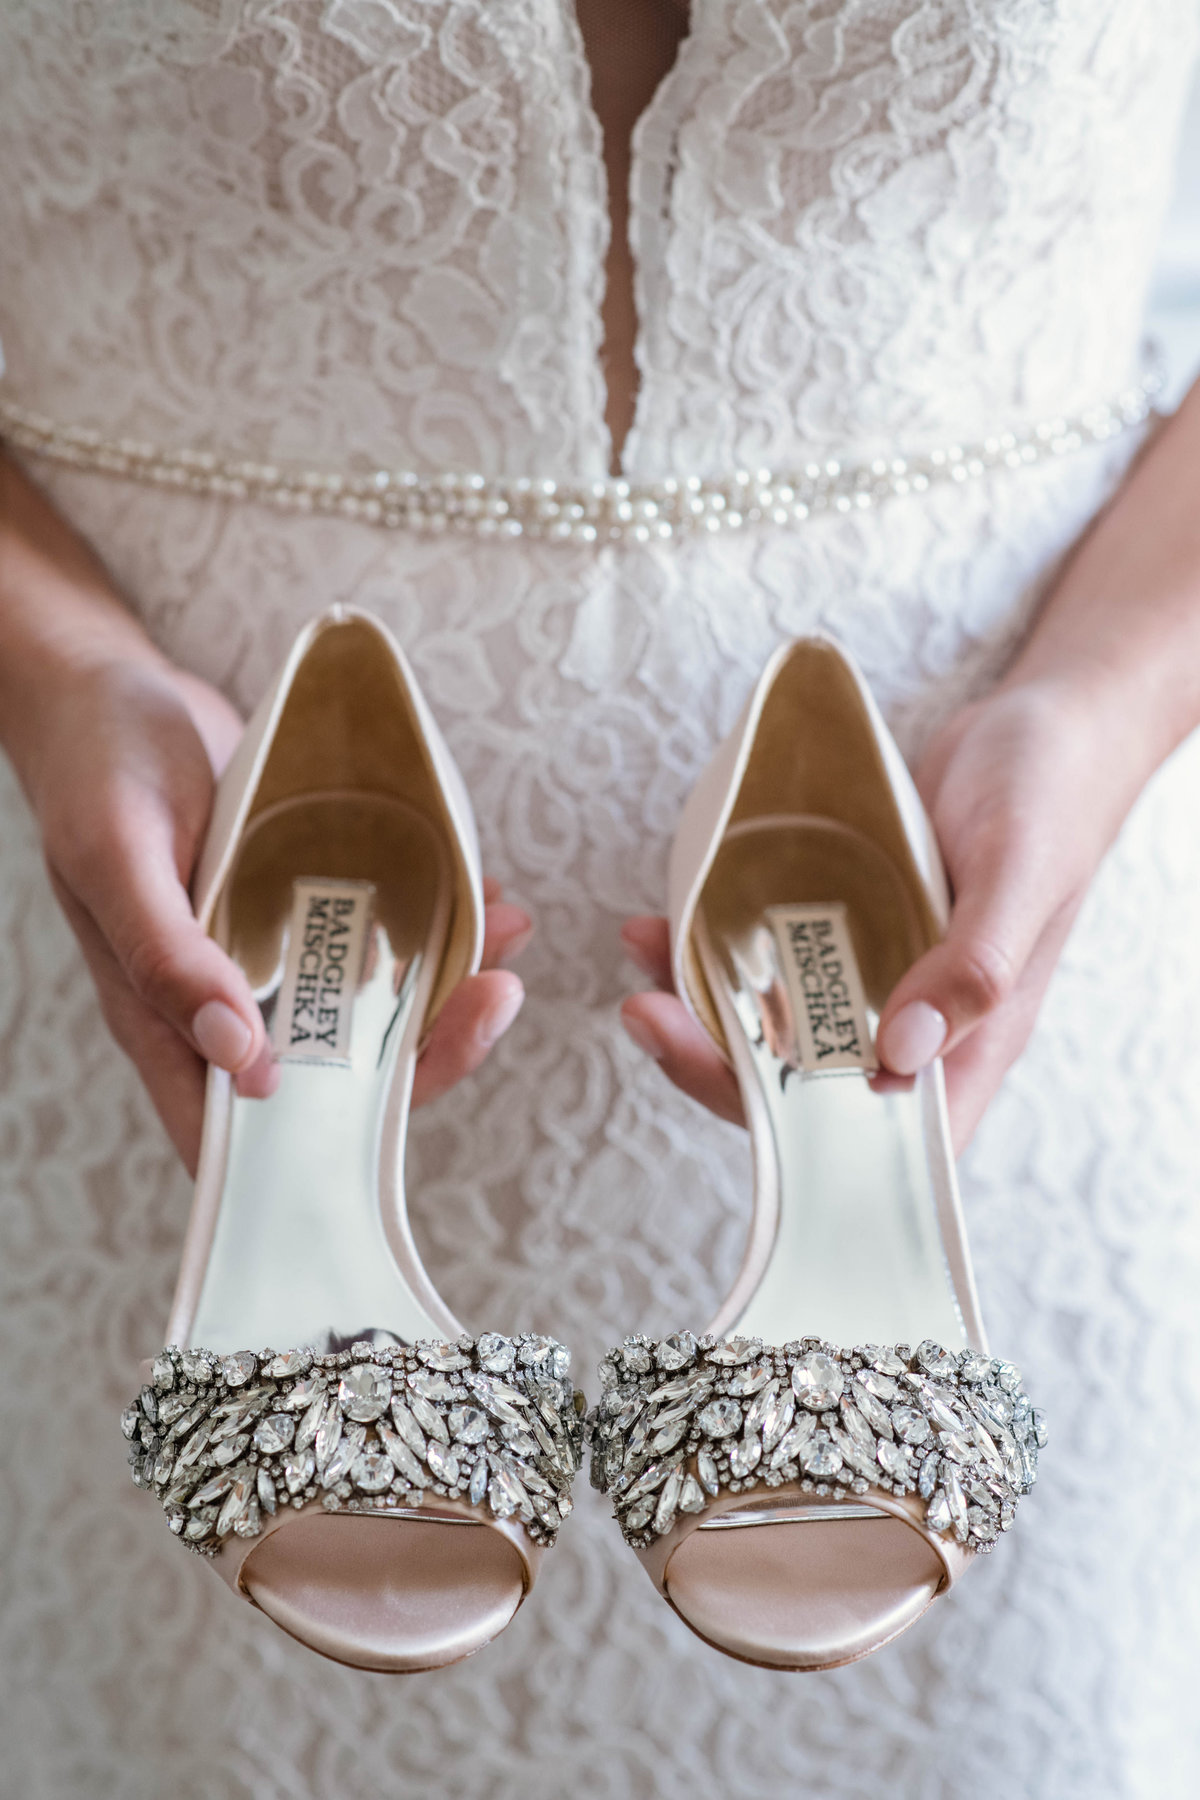 photo of bride holding wedding shoes from wedding at the Mansion at Timber Point